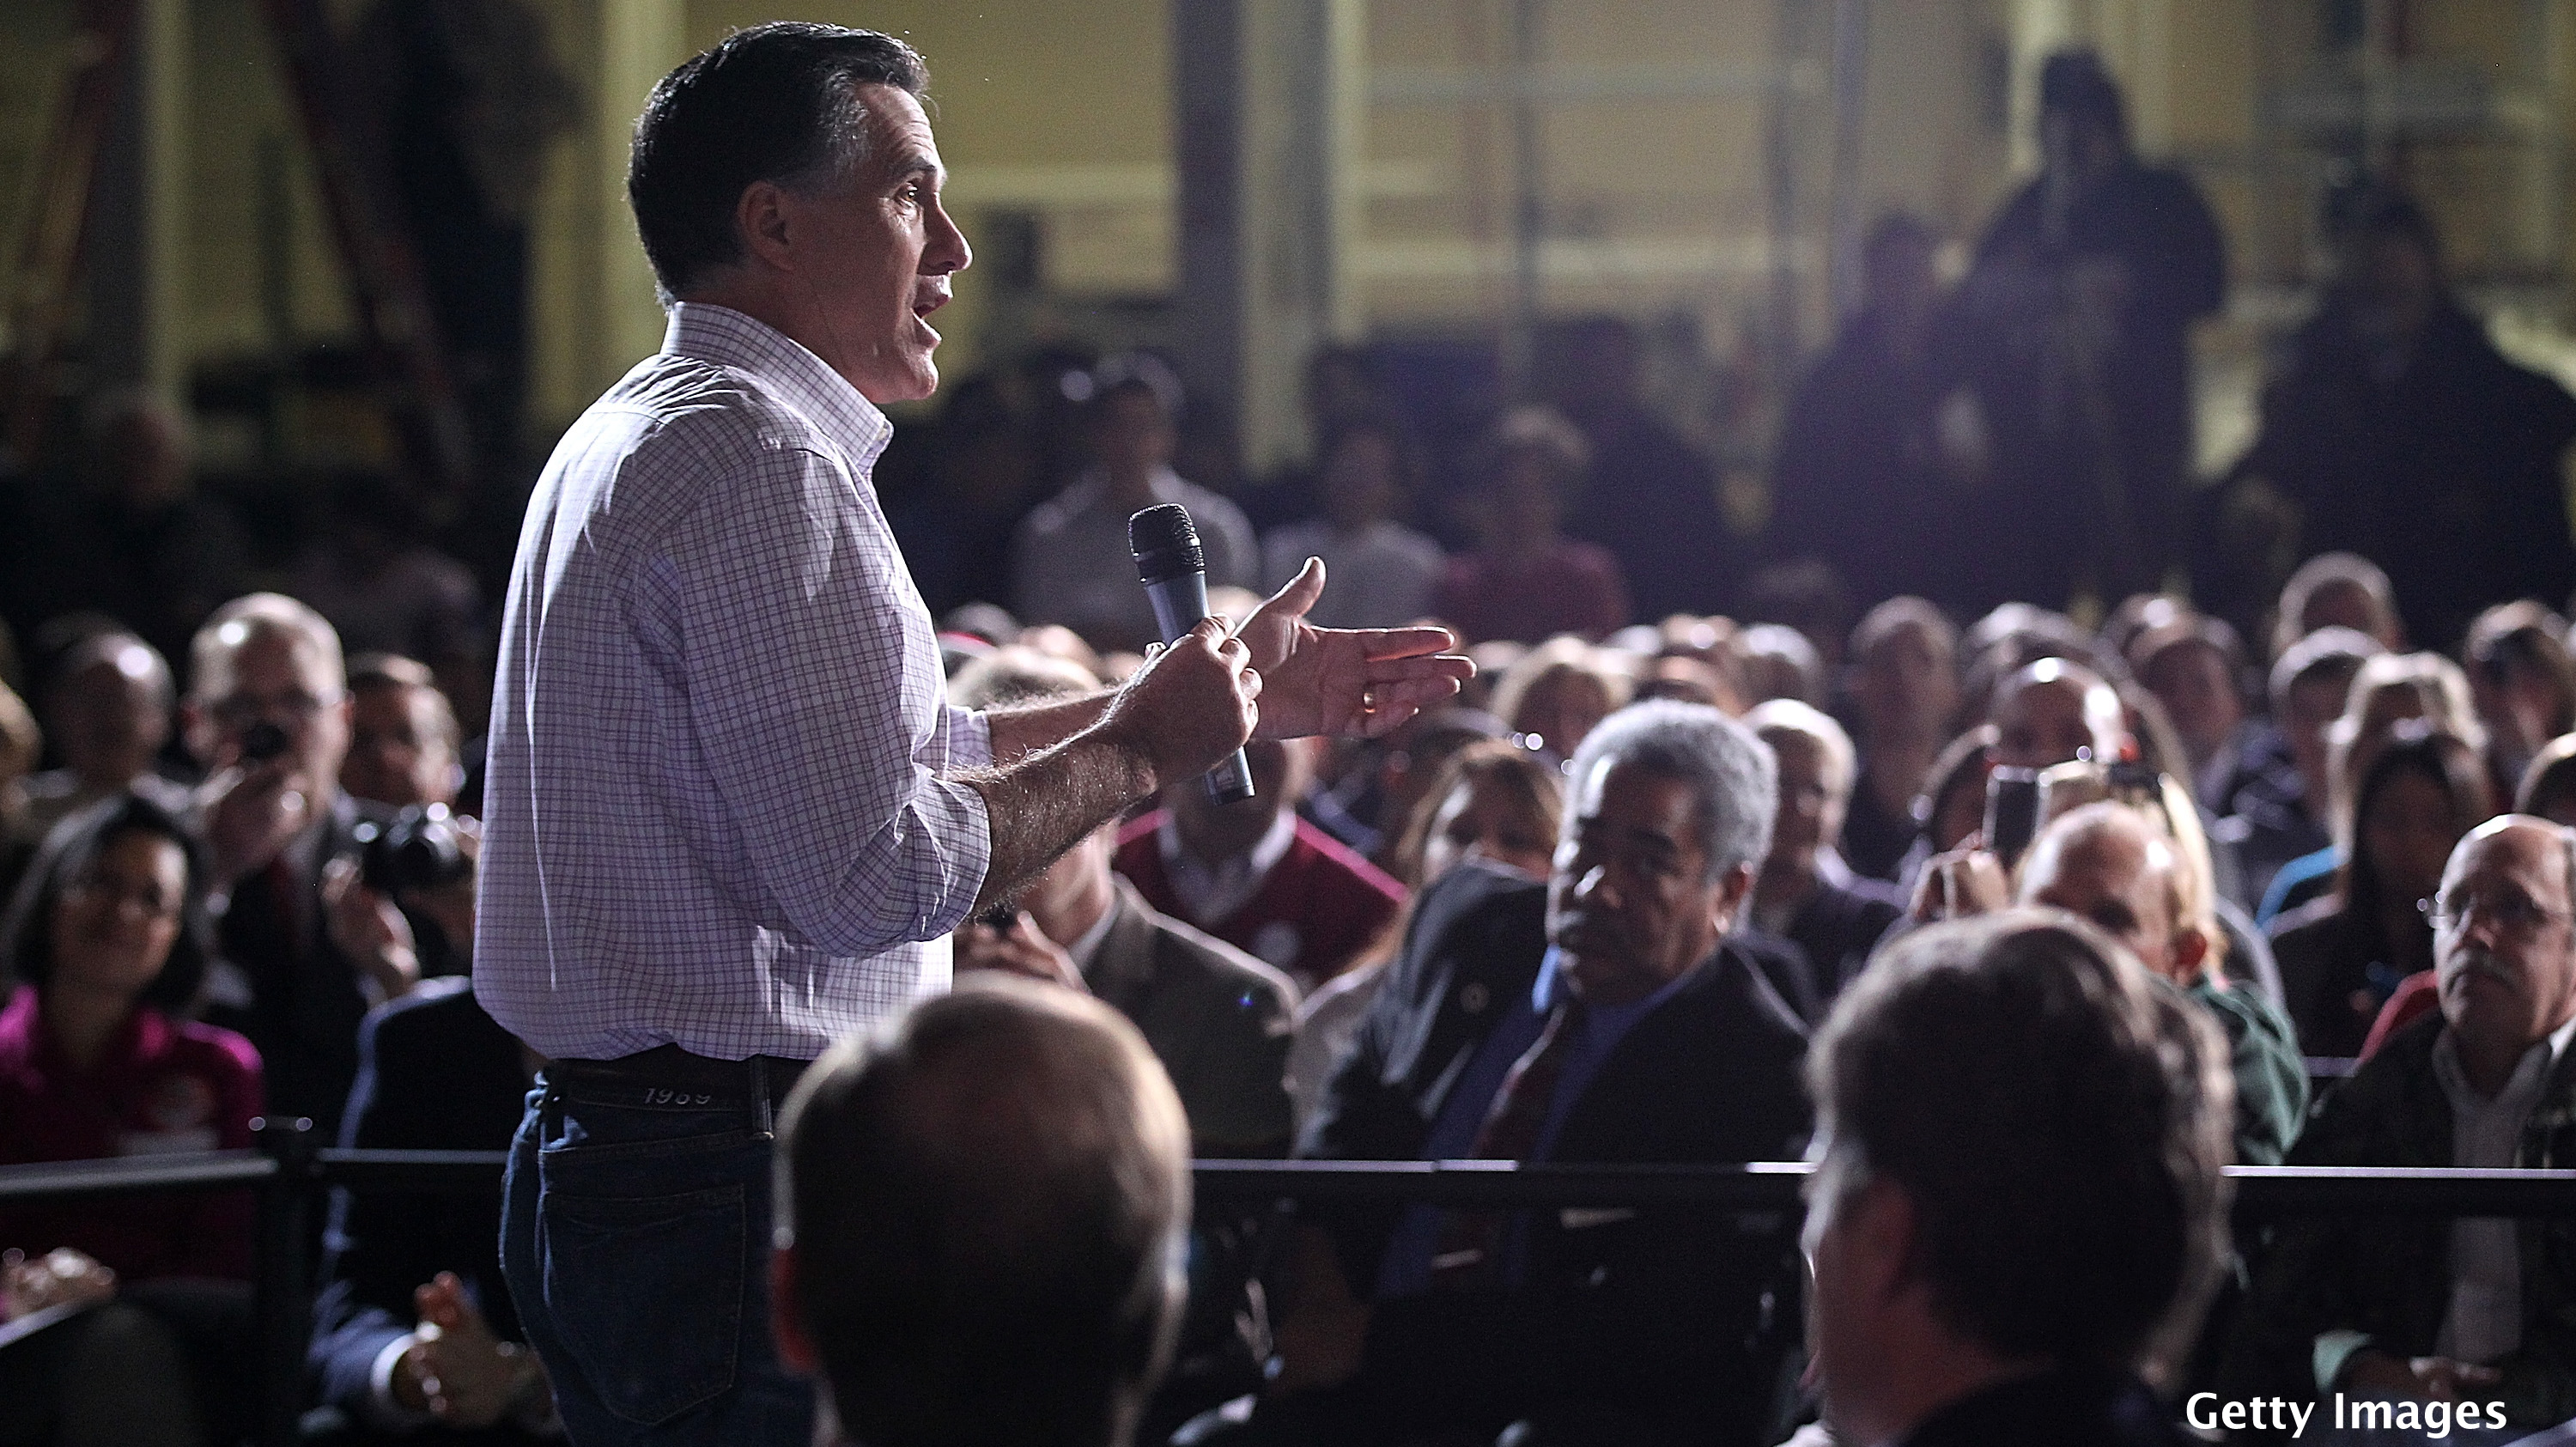 Romney confident in Ohio stops